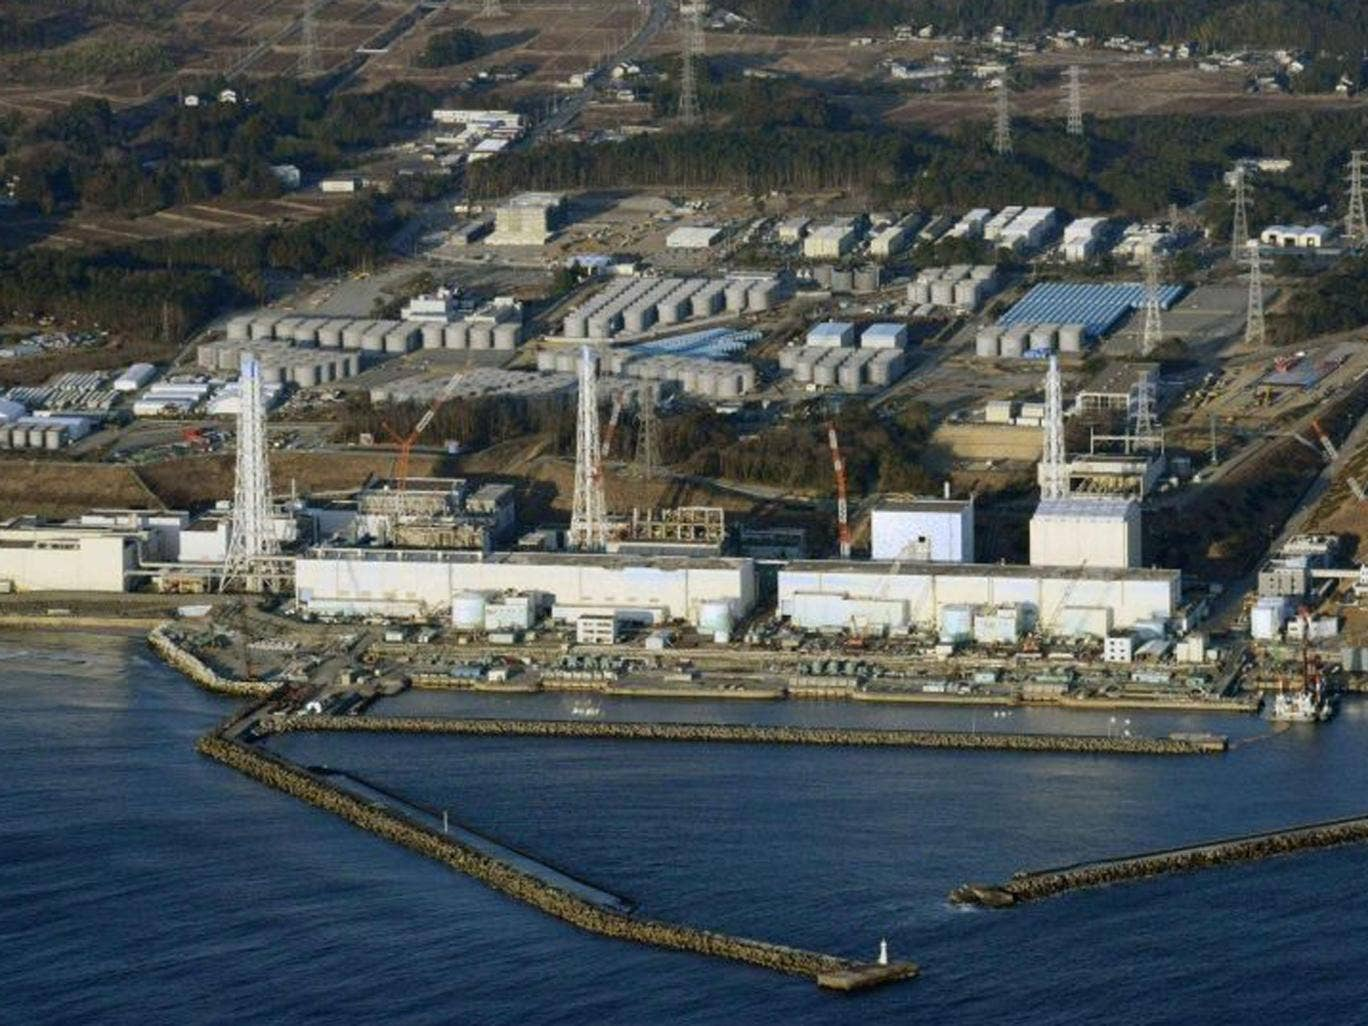 Japan's earthquake and tsunami on 11 March 2011 destroyed the Fukushima Dai-ichi plant's power and cooling systems, causing three reactor cores to melt and fuel storage pools to overheat